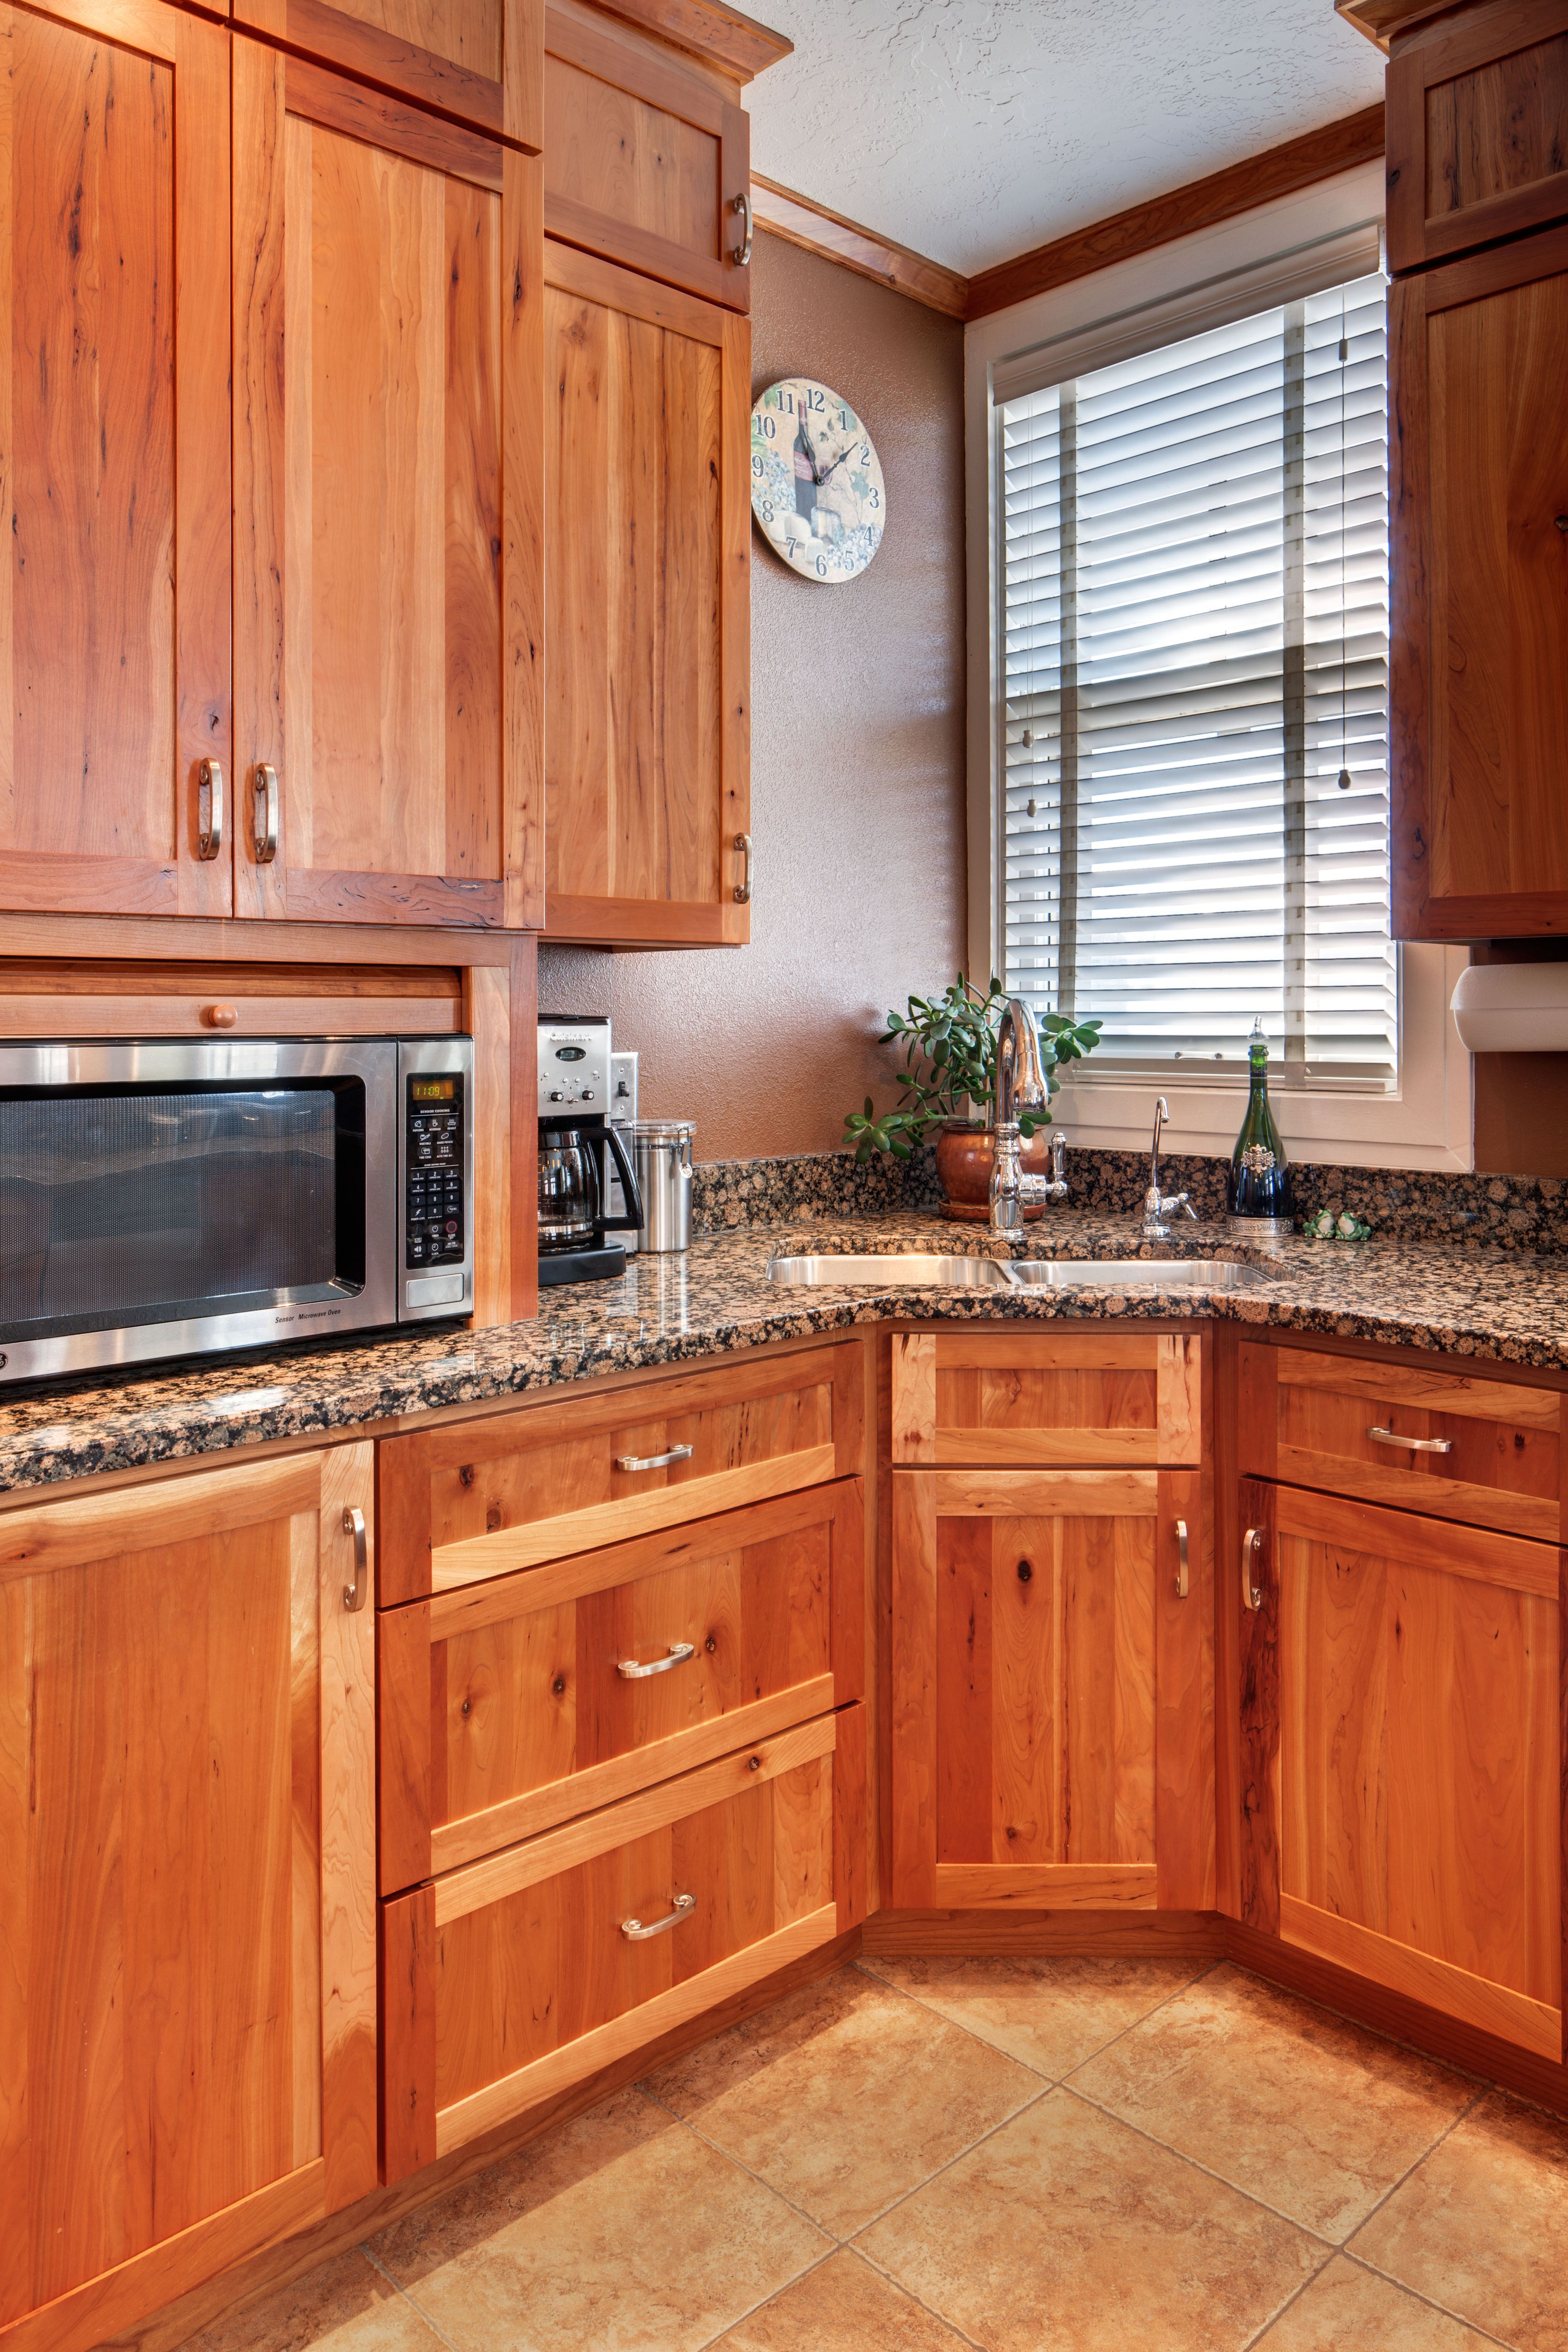 Crown Cabinets Clearcreek Knotty Cherry Natural Crown Cabinets Cabinet New Homes